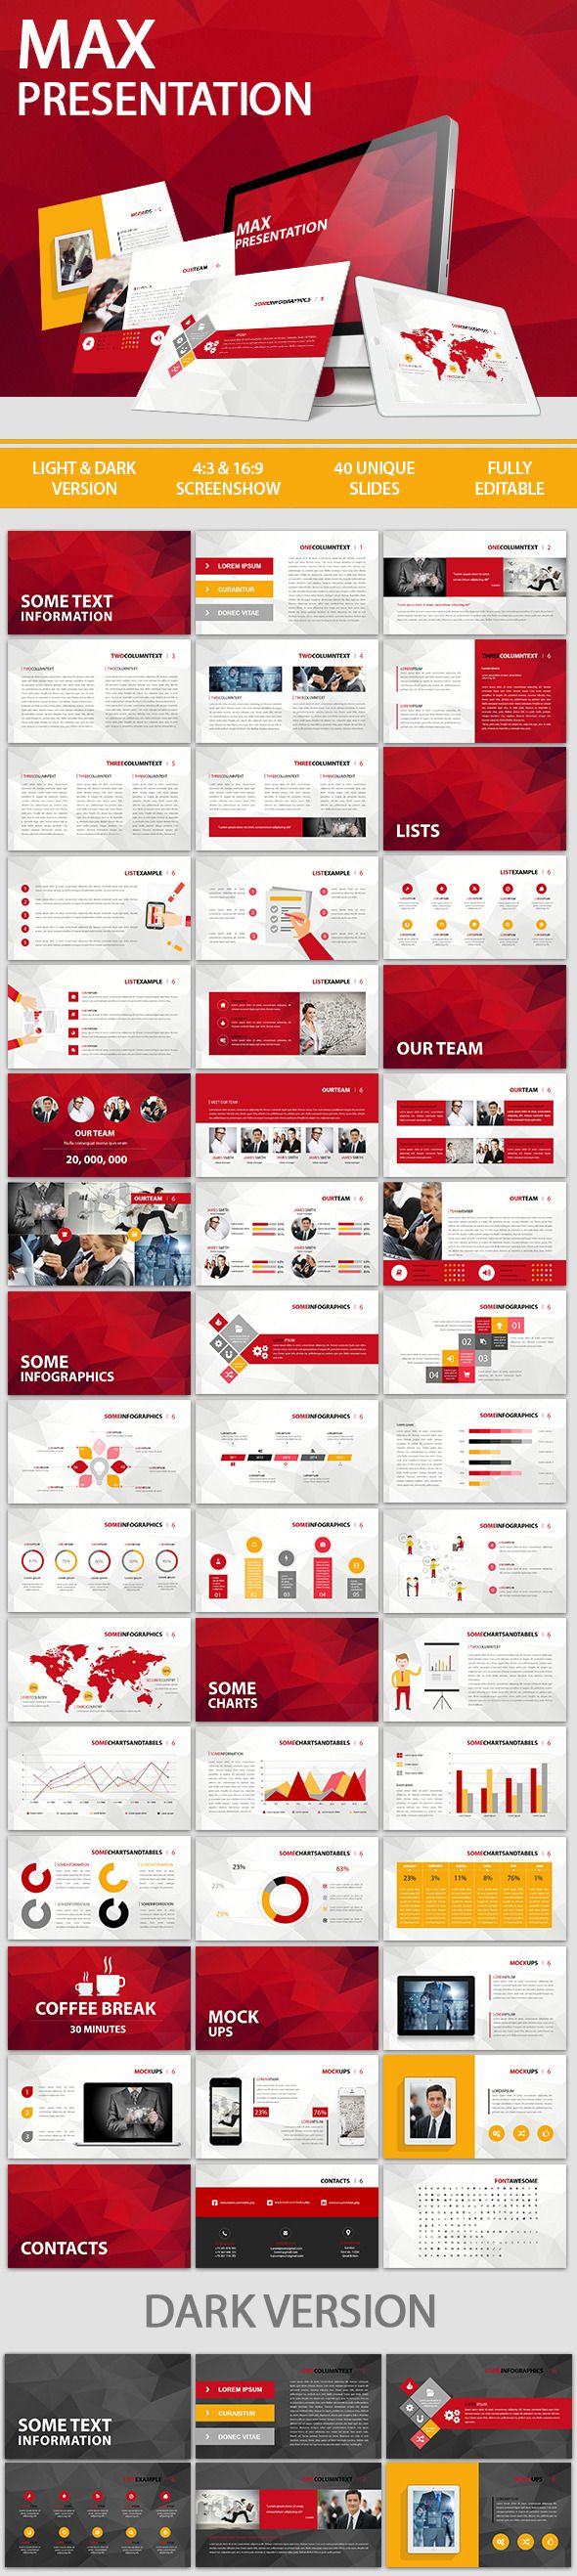 Max Presentation (PowerPoint Templates)